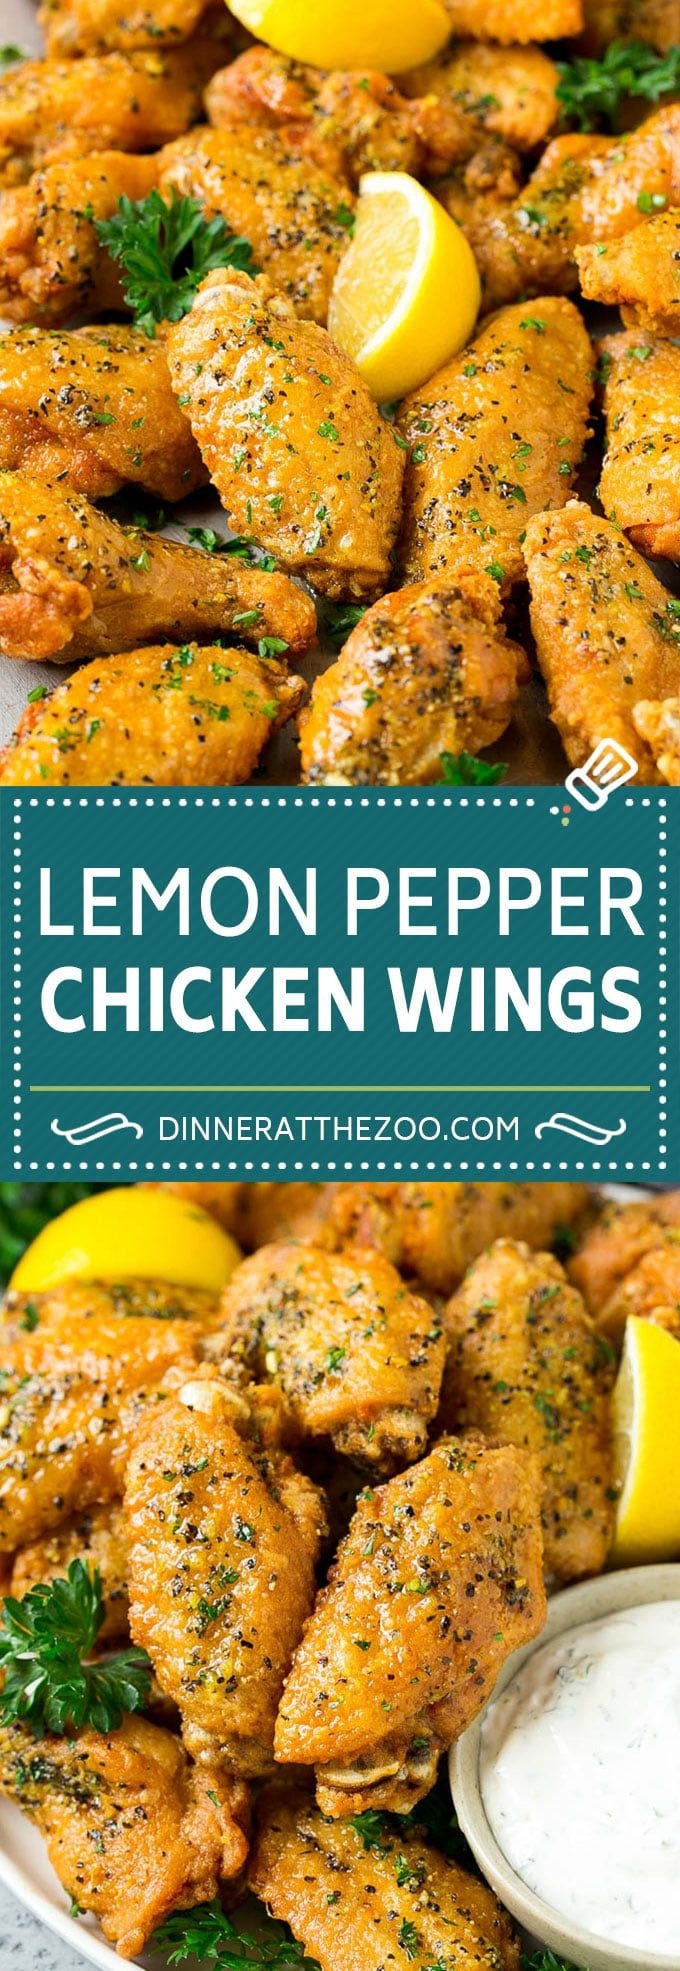 Lemon Pepper Wings Recipe | Lemon Pepper Chicken | Fried Chicken Wings